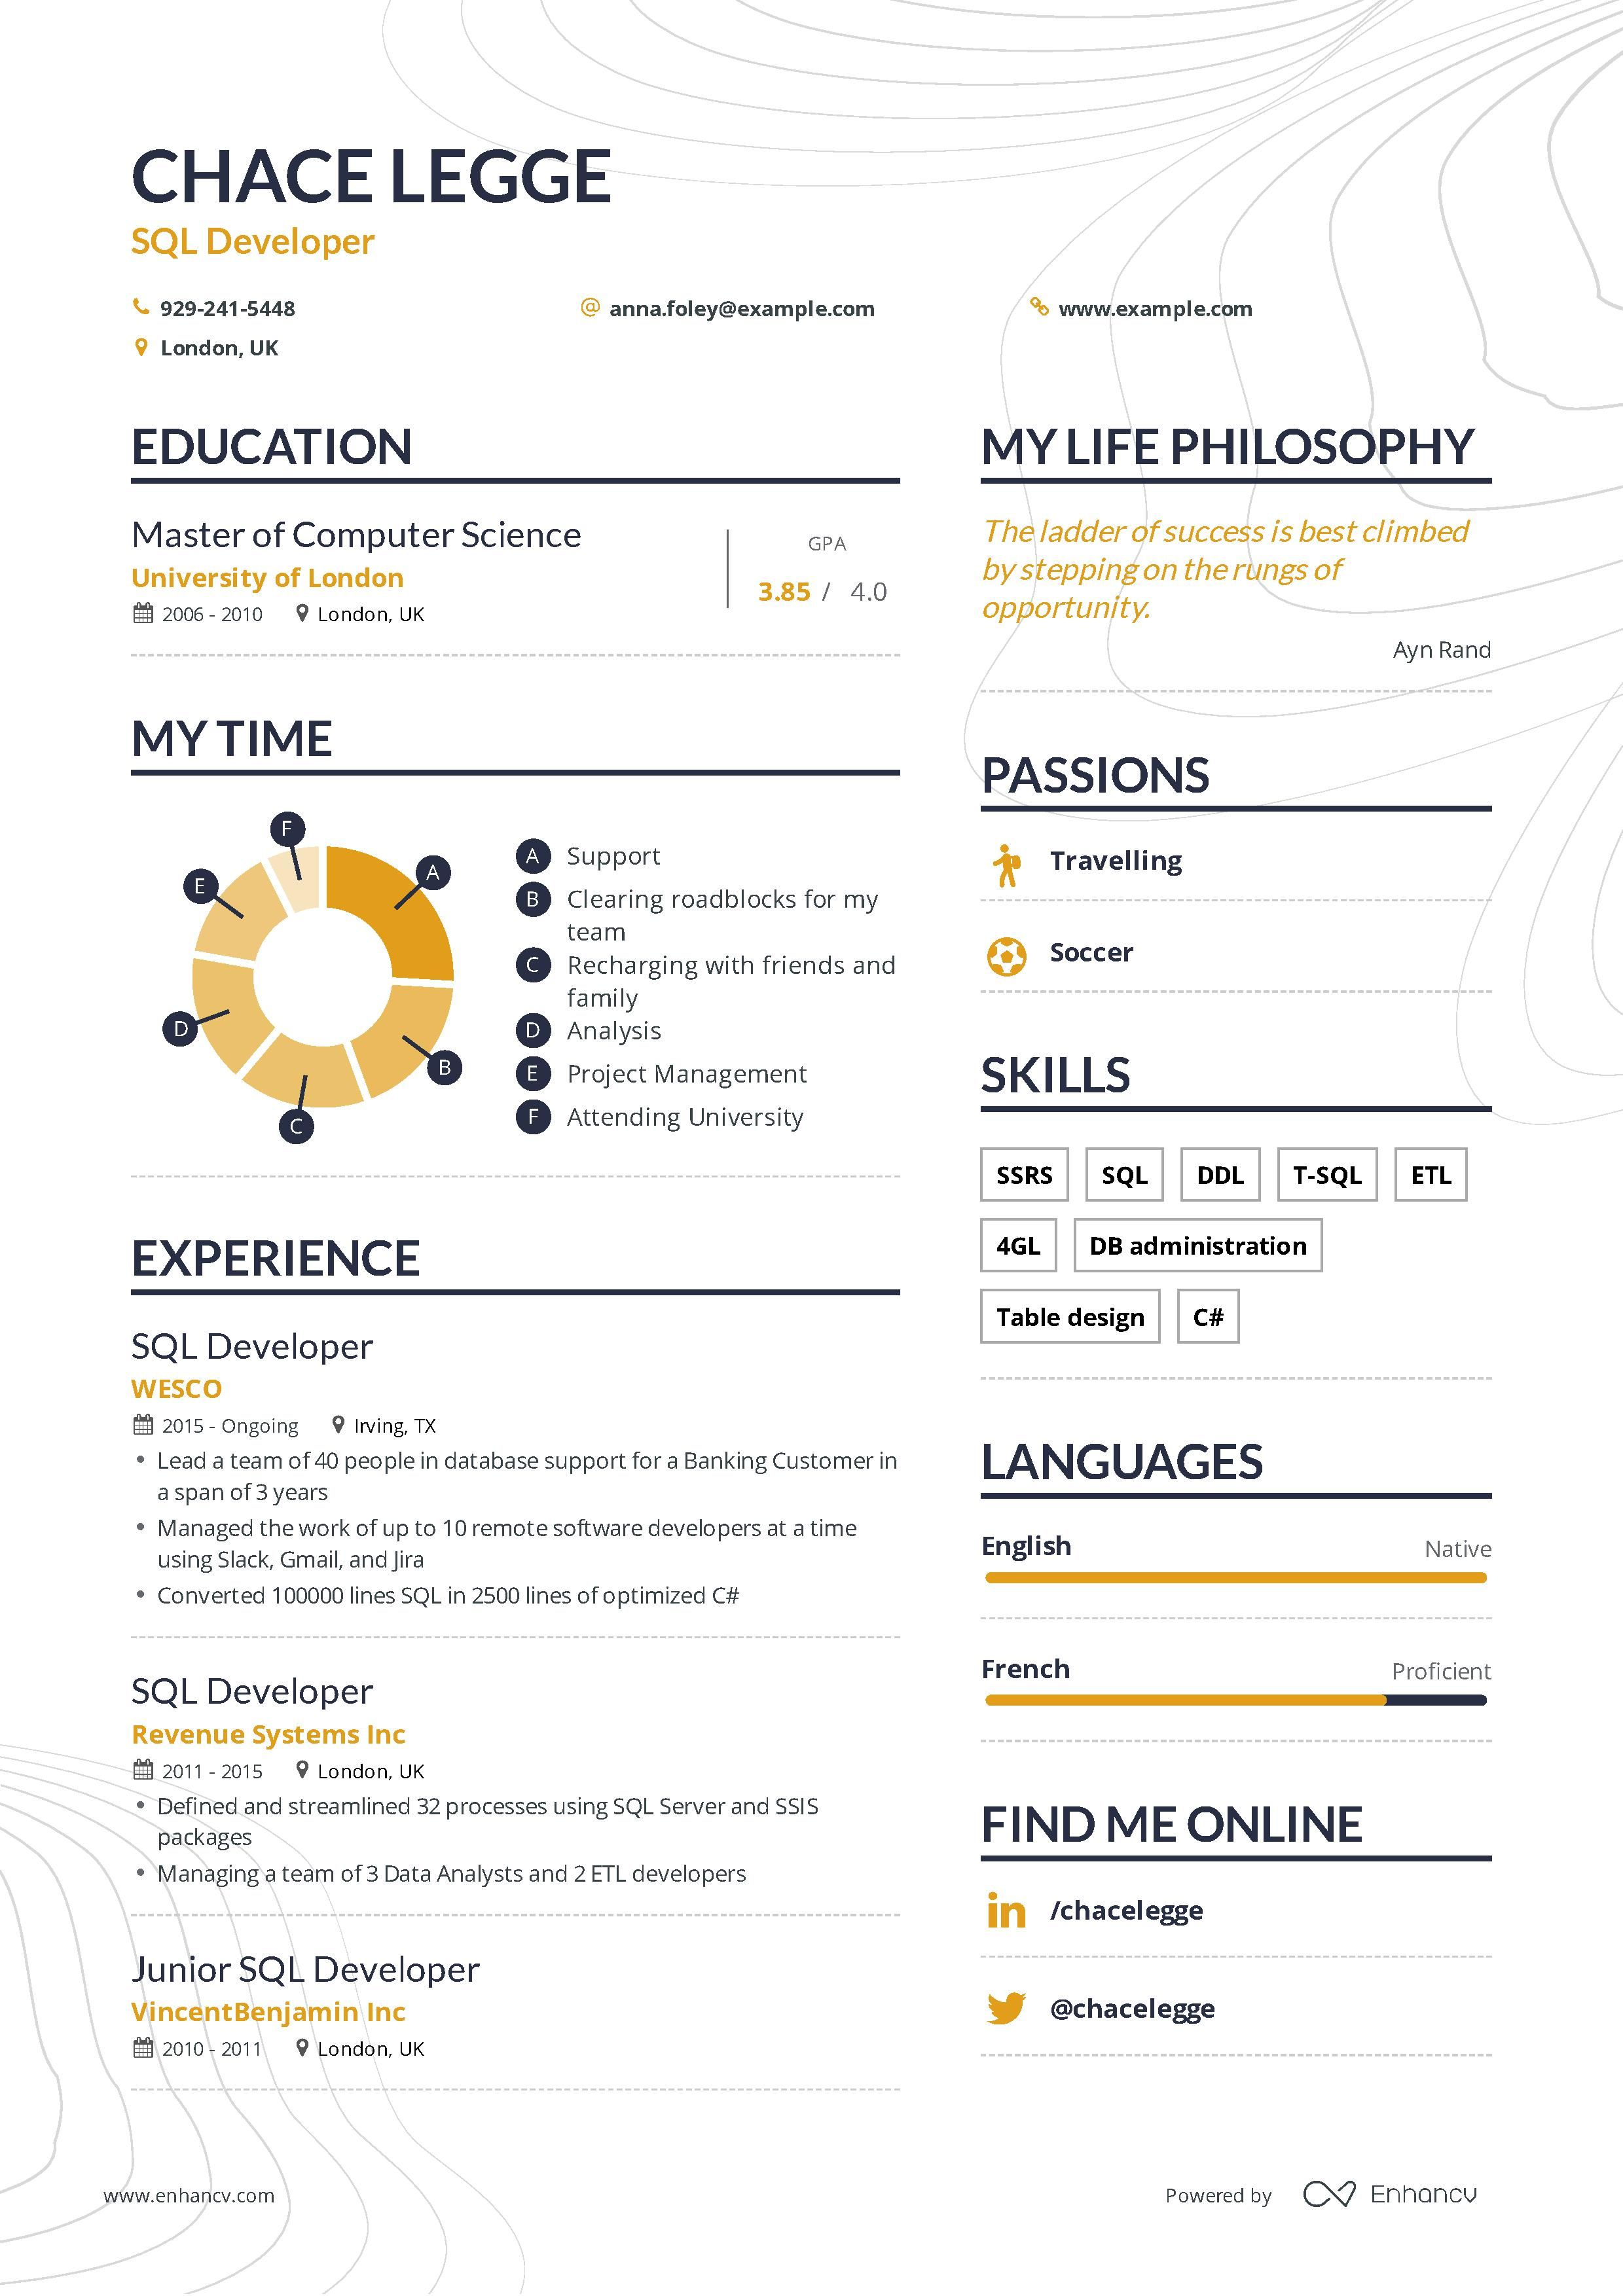 Sql Developer Resume Example And Guide For 2019 Resume Examples Resume Guide Sql